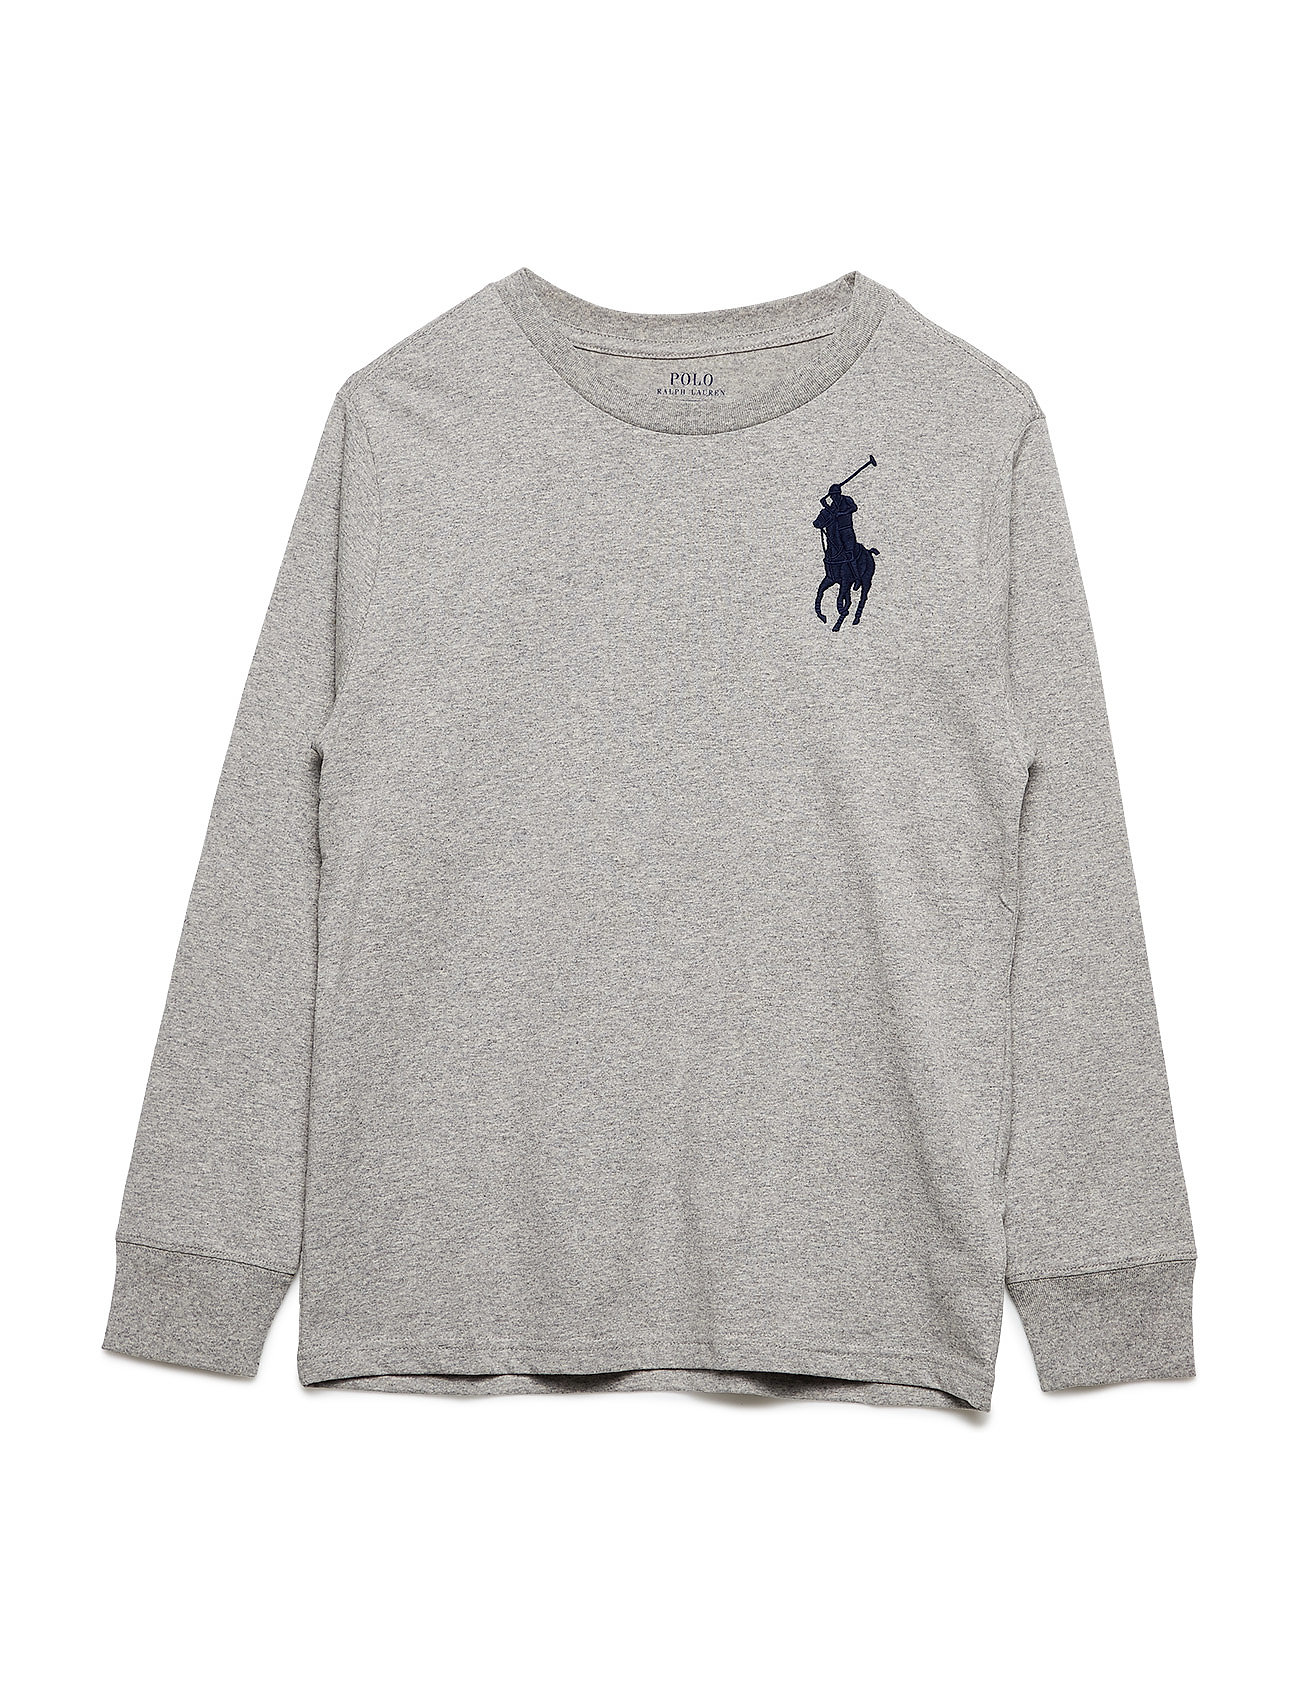 Ralph Lauren Kids Cotton Jersey Crewneck T-Shirt